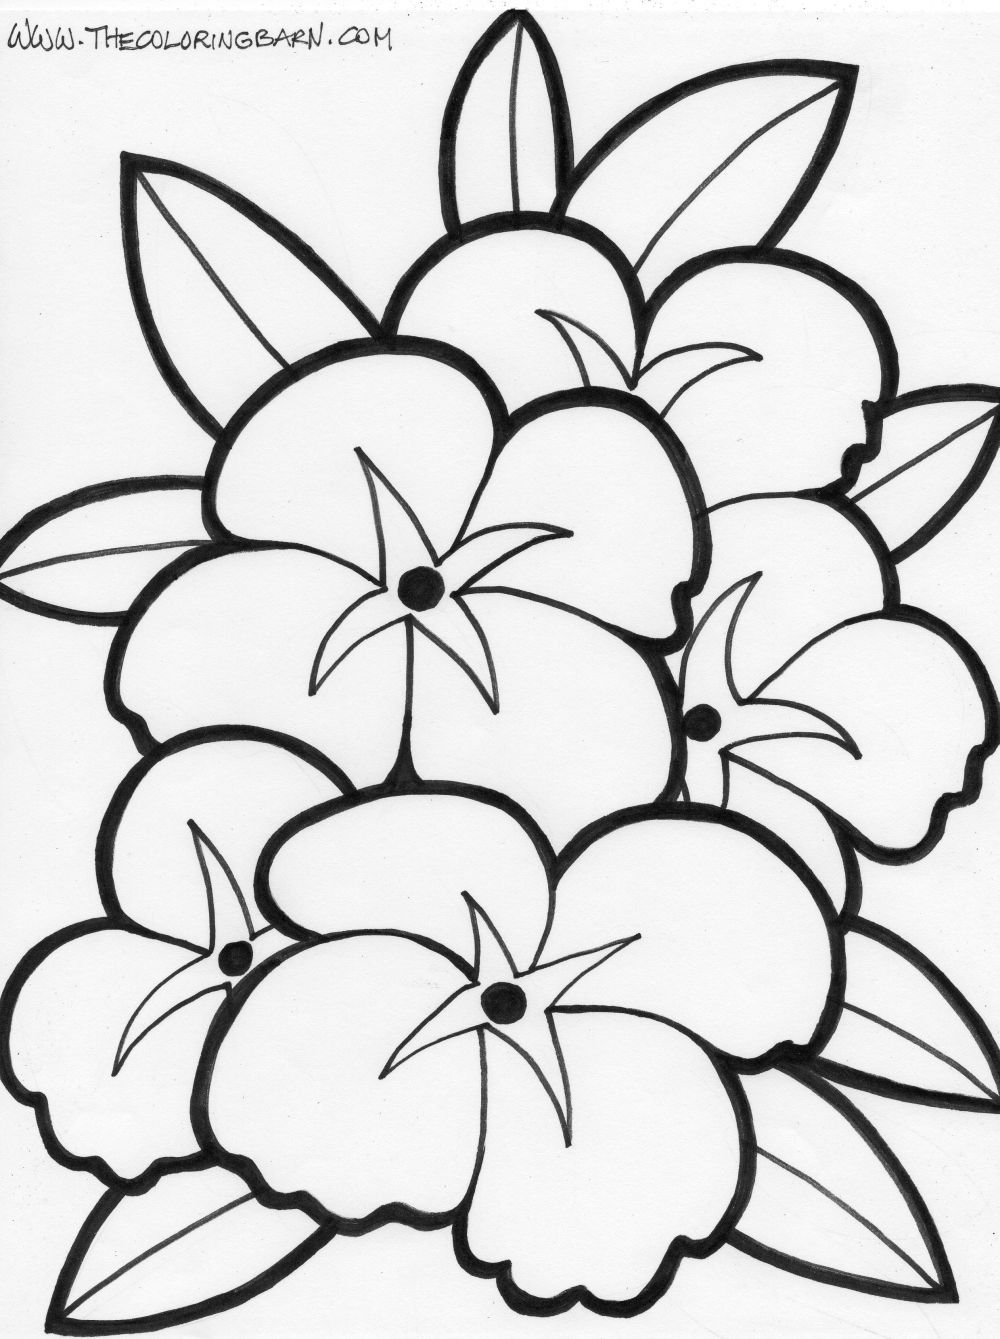 printable coloring pages of flowers. Free Printable Flower Coloring Pages  Bing Images free printable coloring pages Google Search Doodle Flowers